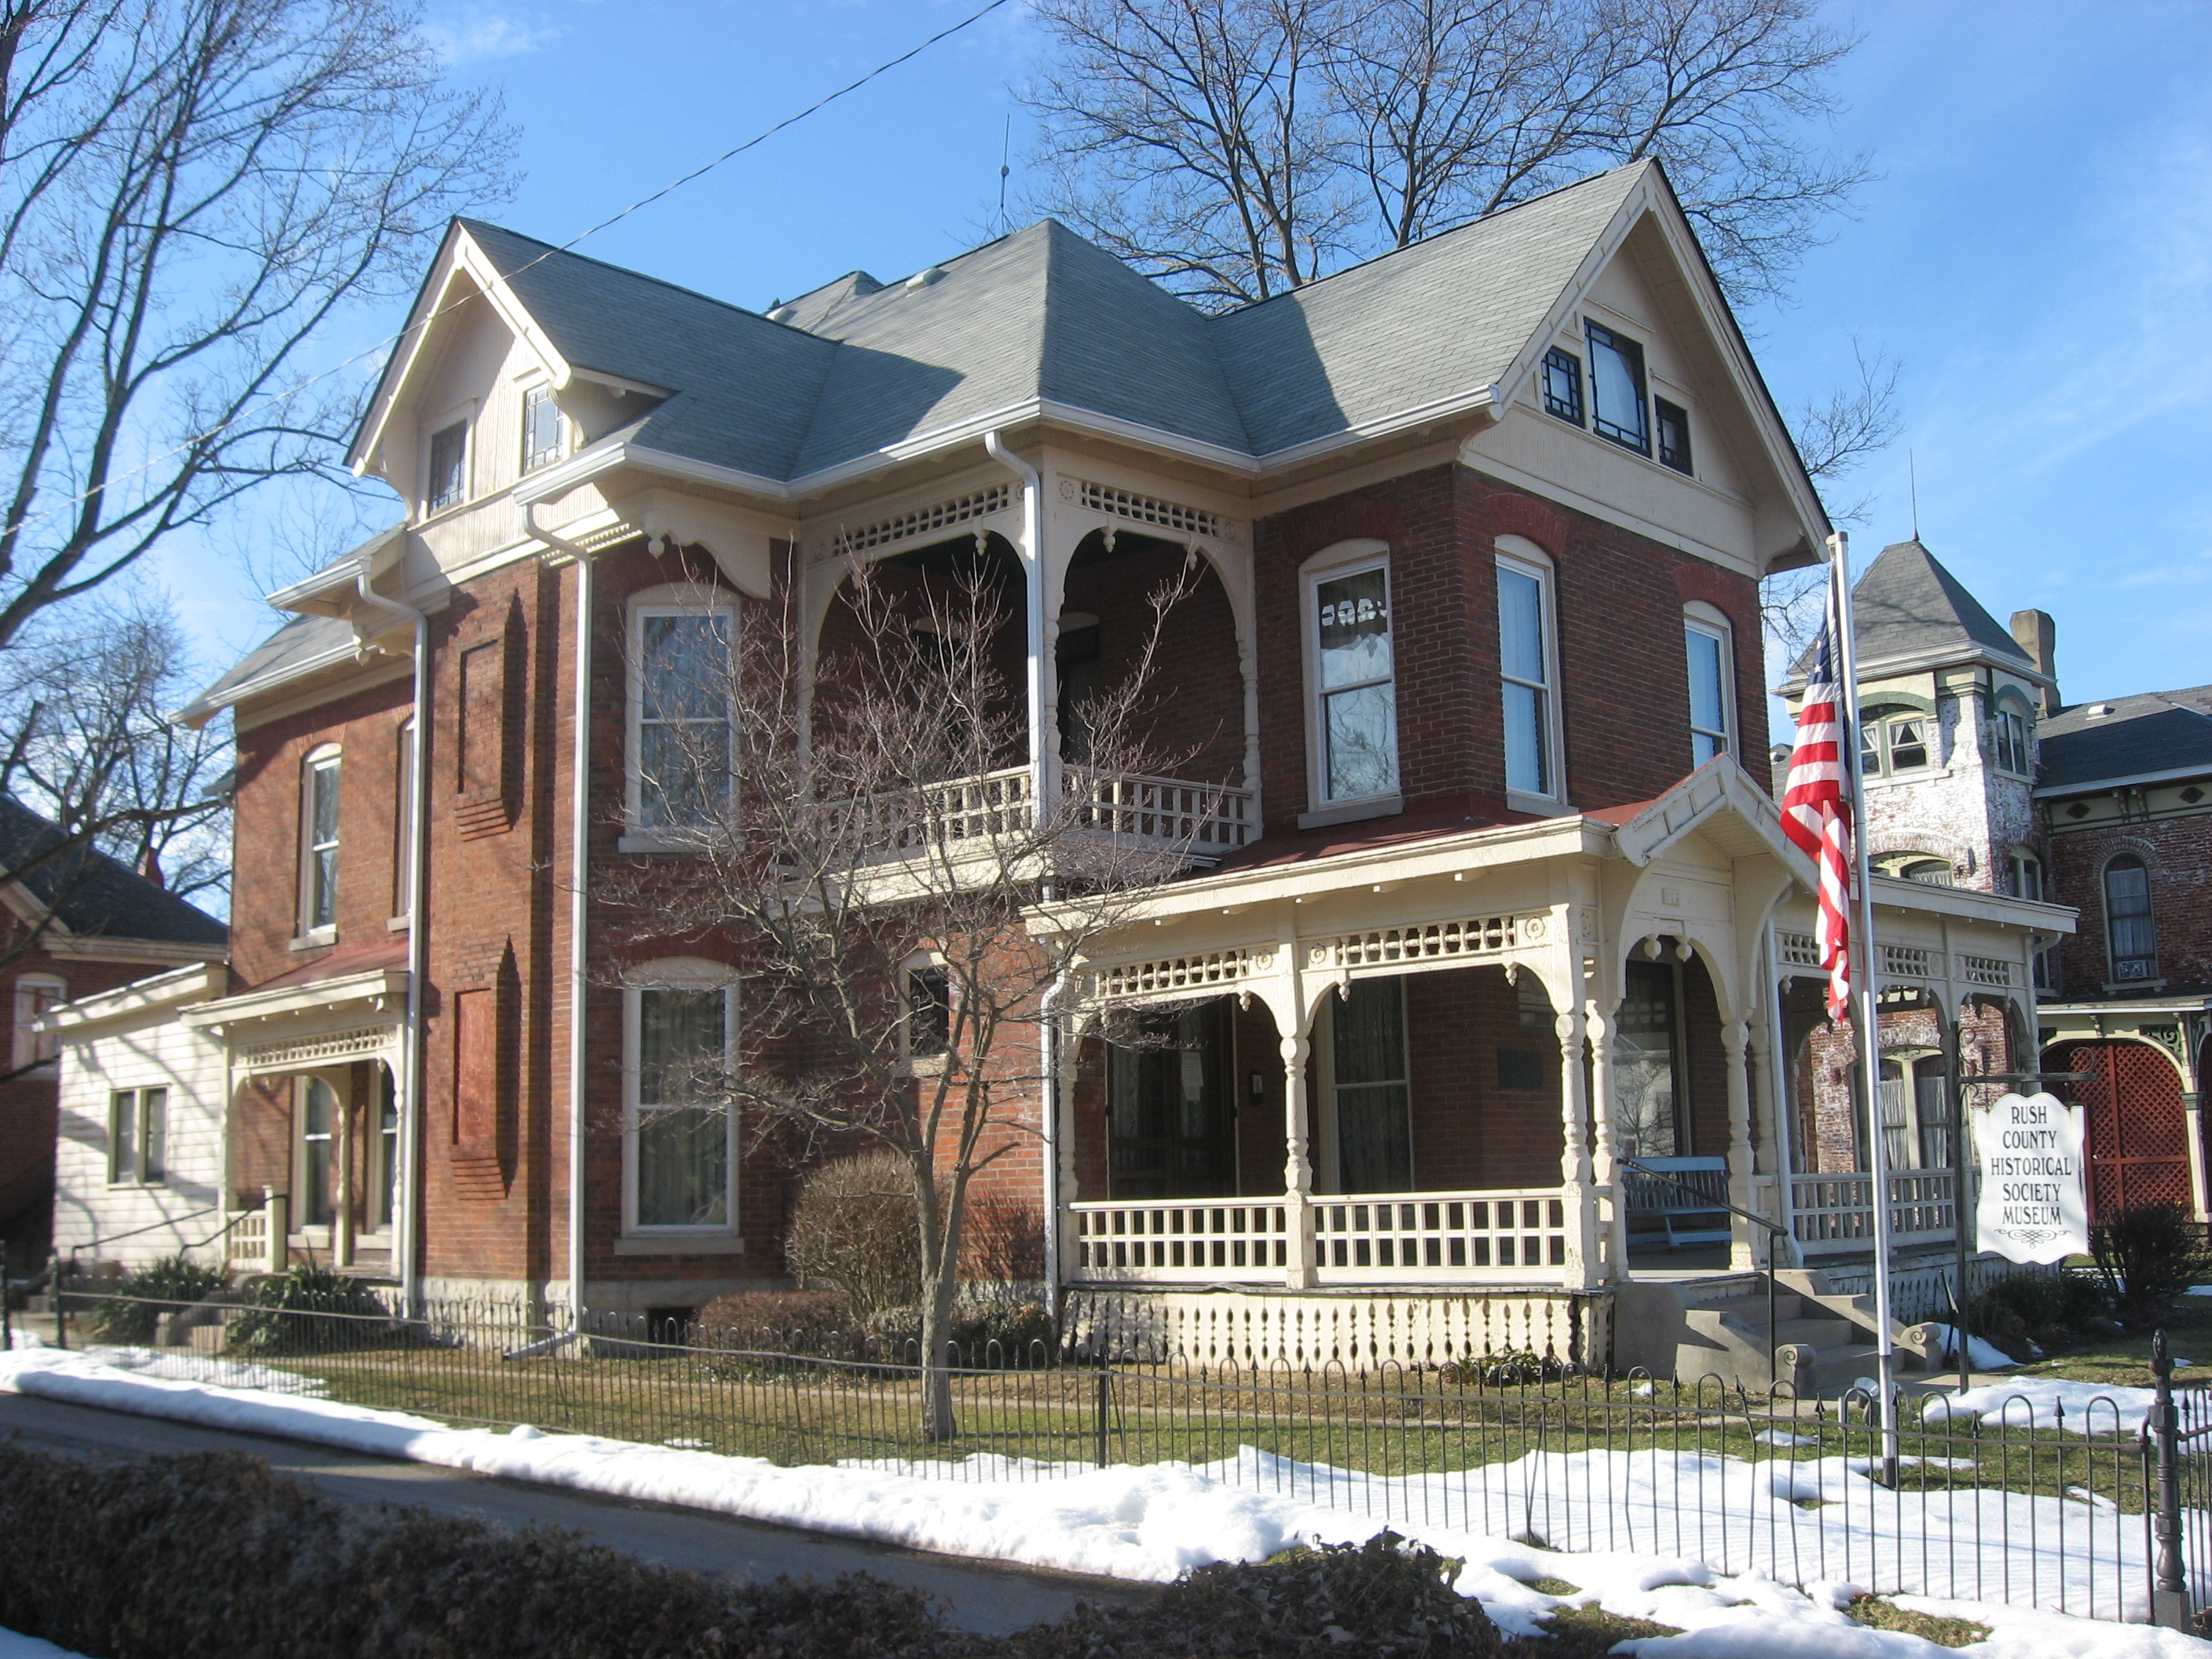 Indiana rush county - The John K Gowdy House In Rushville